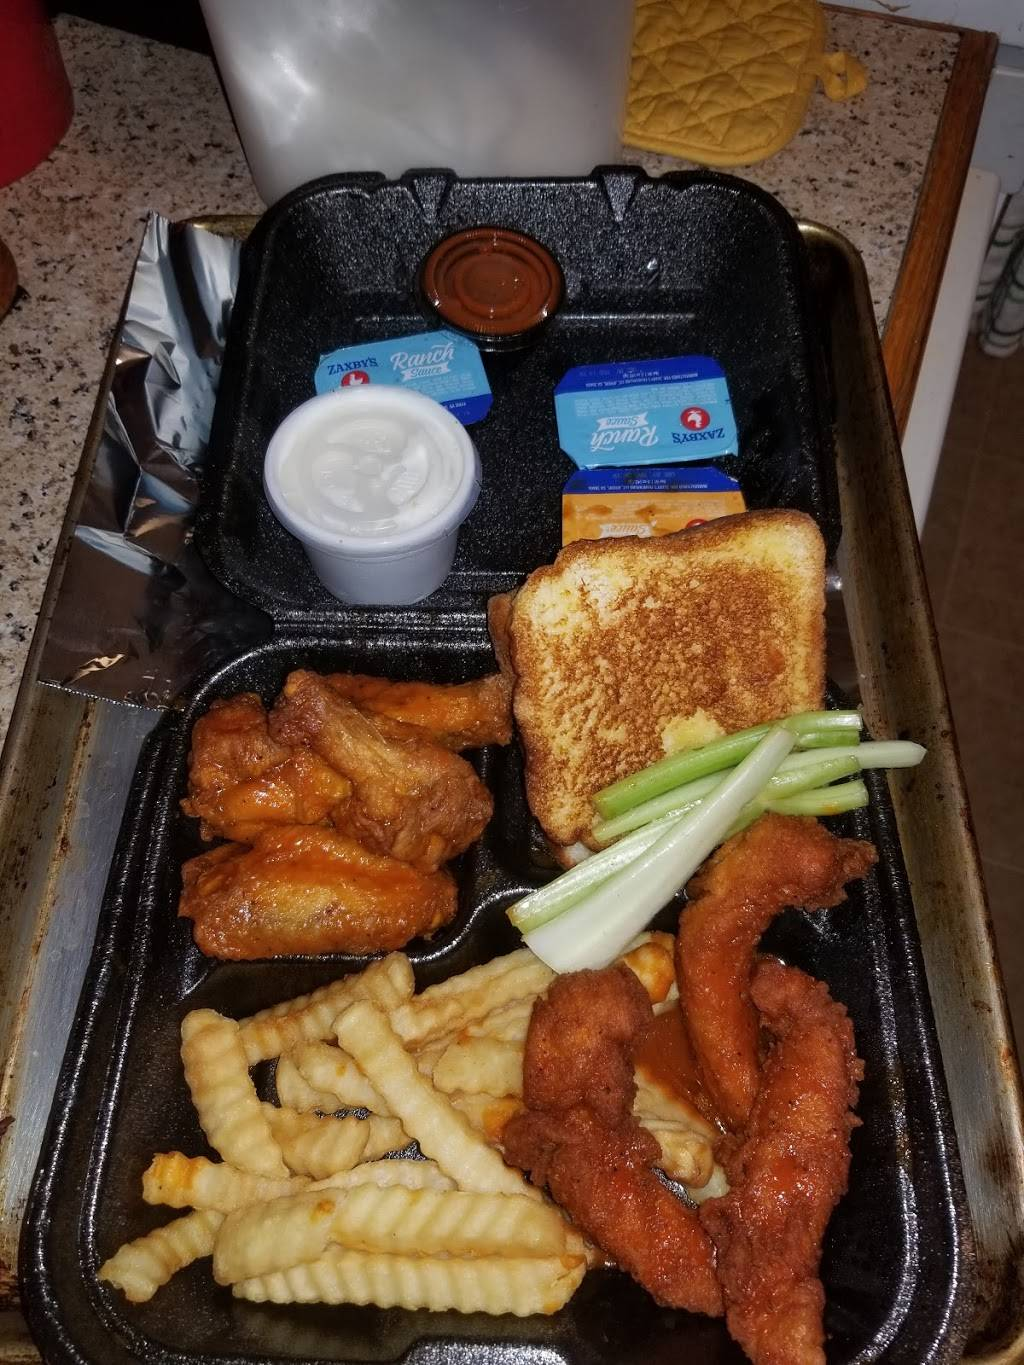 Zaxby S Chicken Fingers Buffalo Wings Restaurant 2430 N Chester St Gastonia Nc 28052 Usa This zaxby's chicken fingers dipping sauce recipe is as close to the real deal as you are going to get. zaxby s chicken fingers buffalo wings